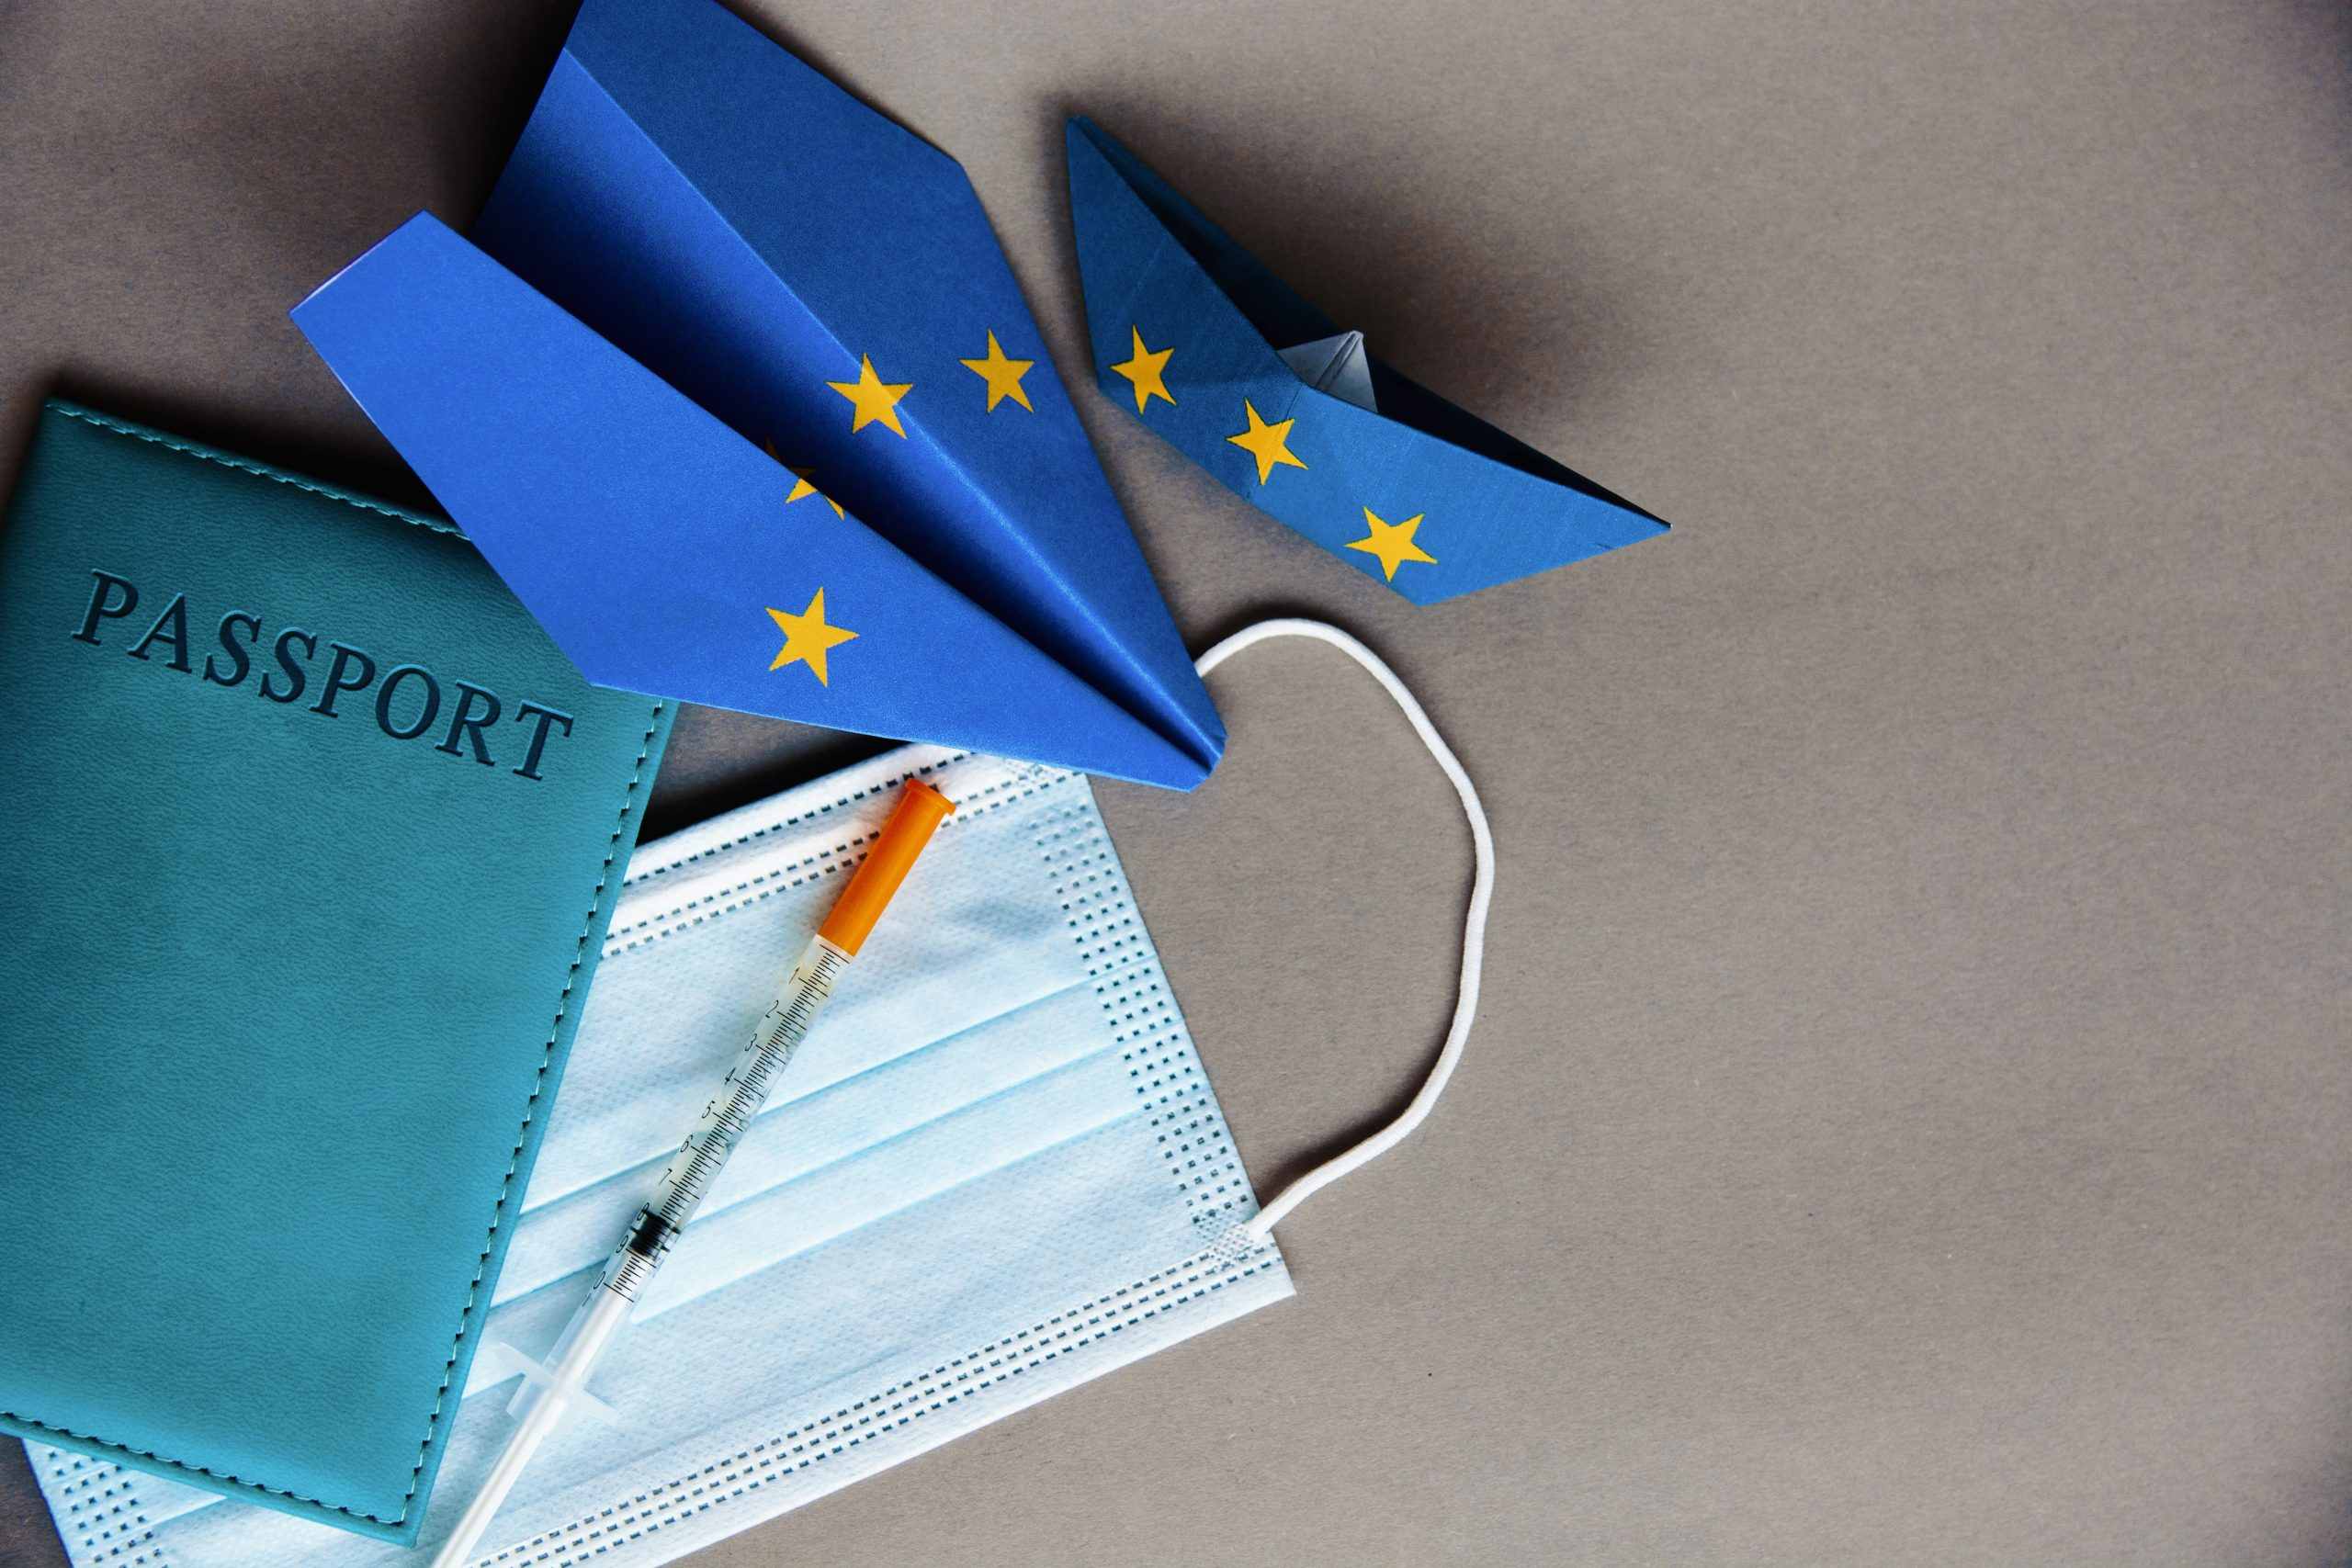 Latest update on COVID-19 travel restrictions to Schengen area for May 2021